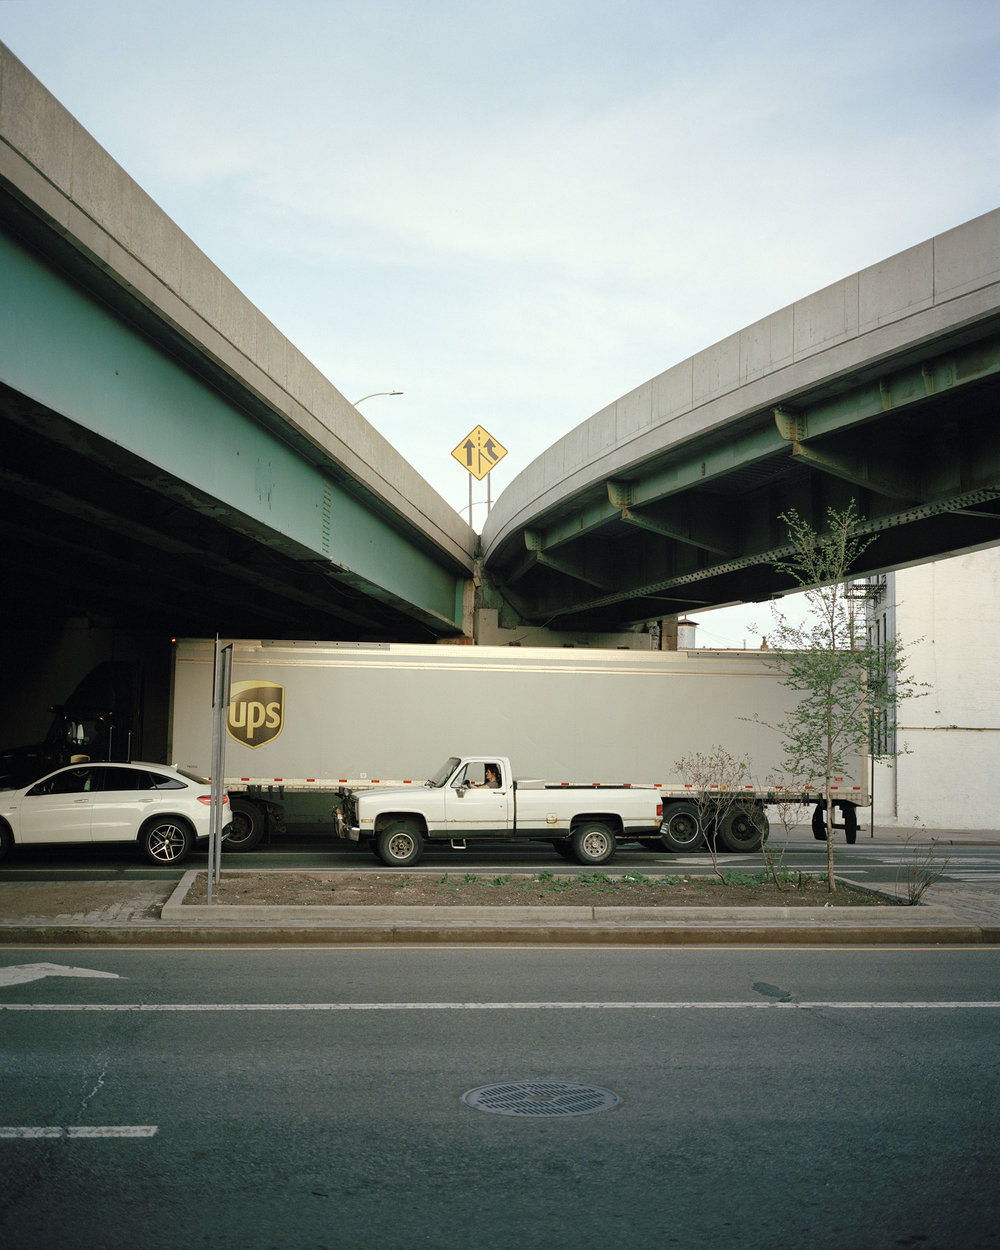 05_under_highway.jpg